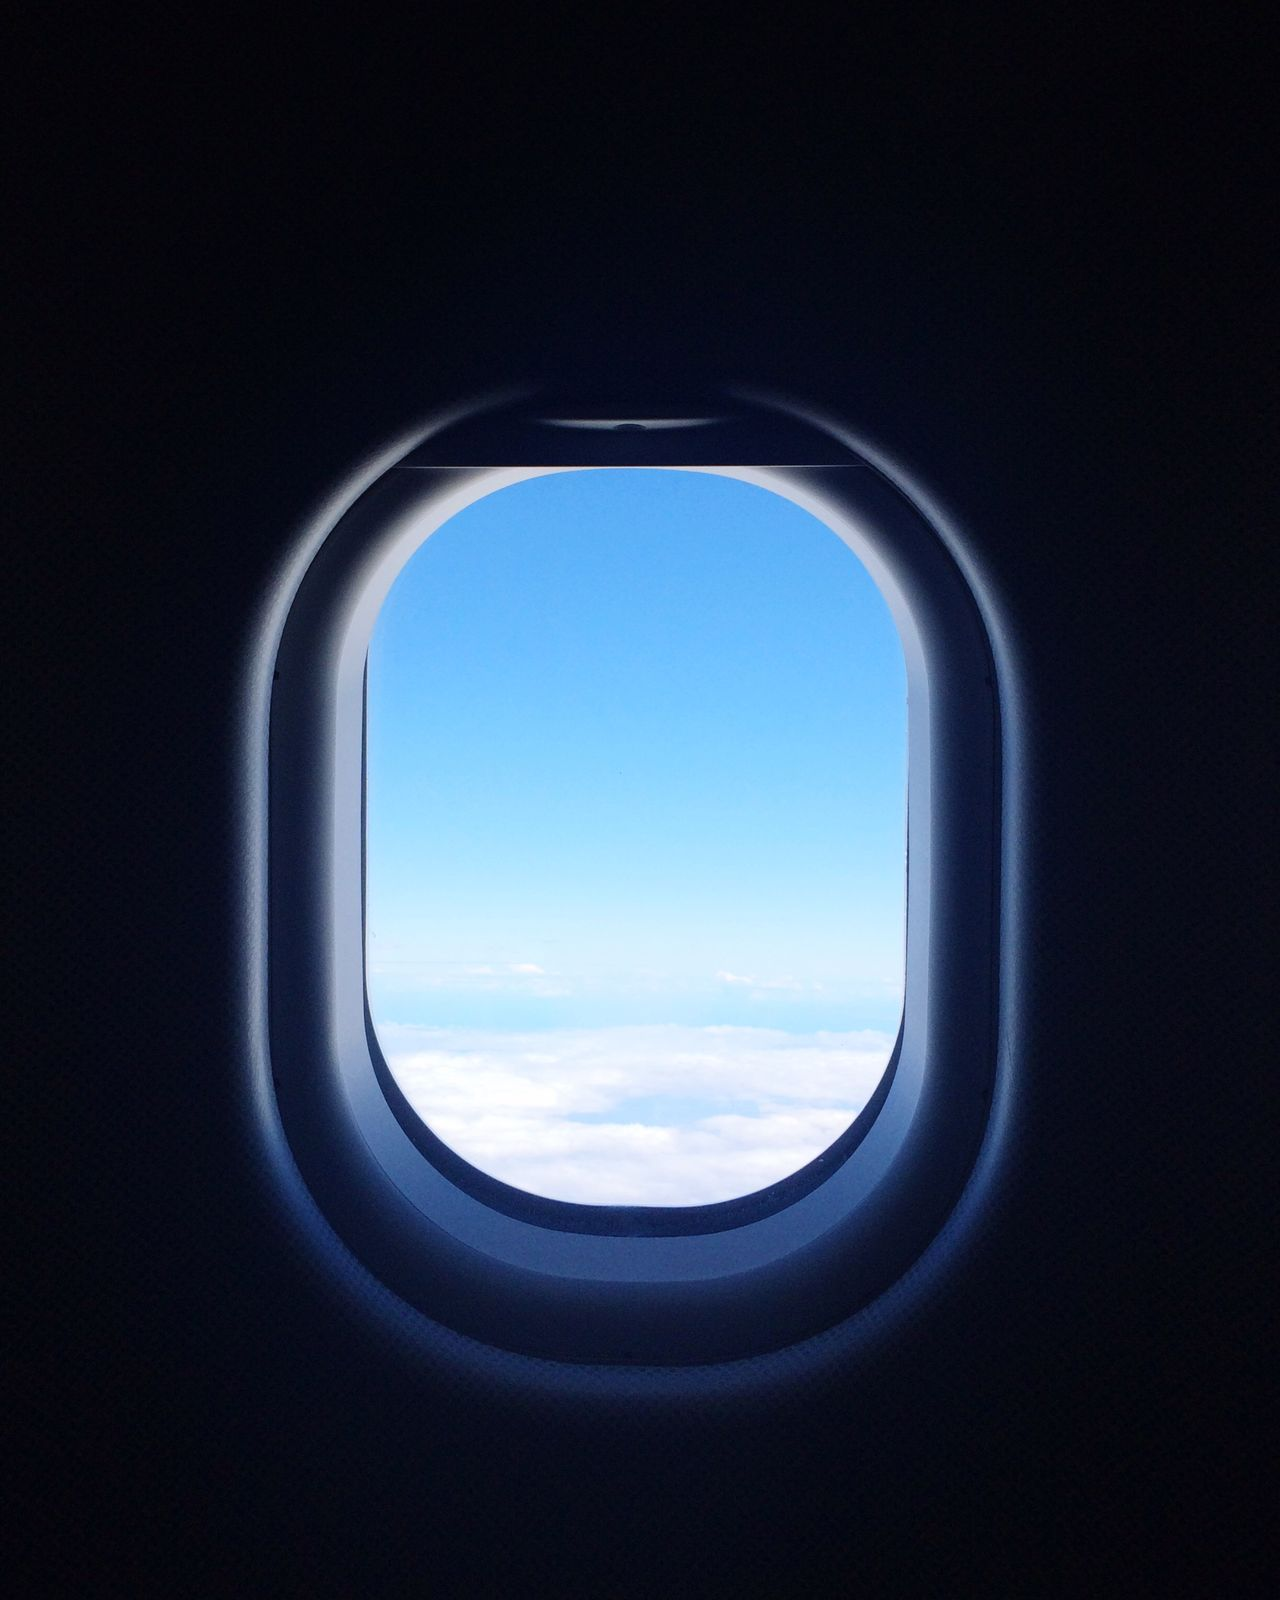 Beautiful stock photos of airplane, window, transportation, sky